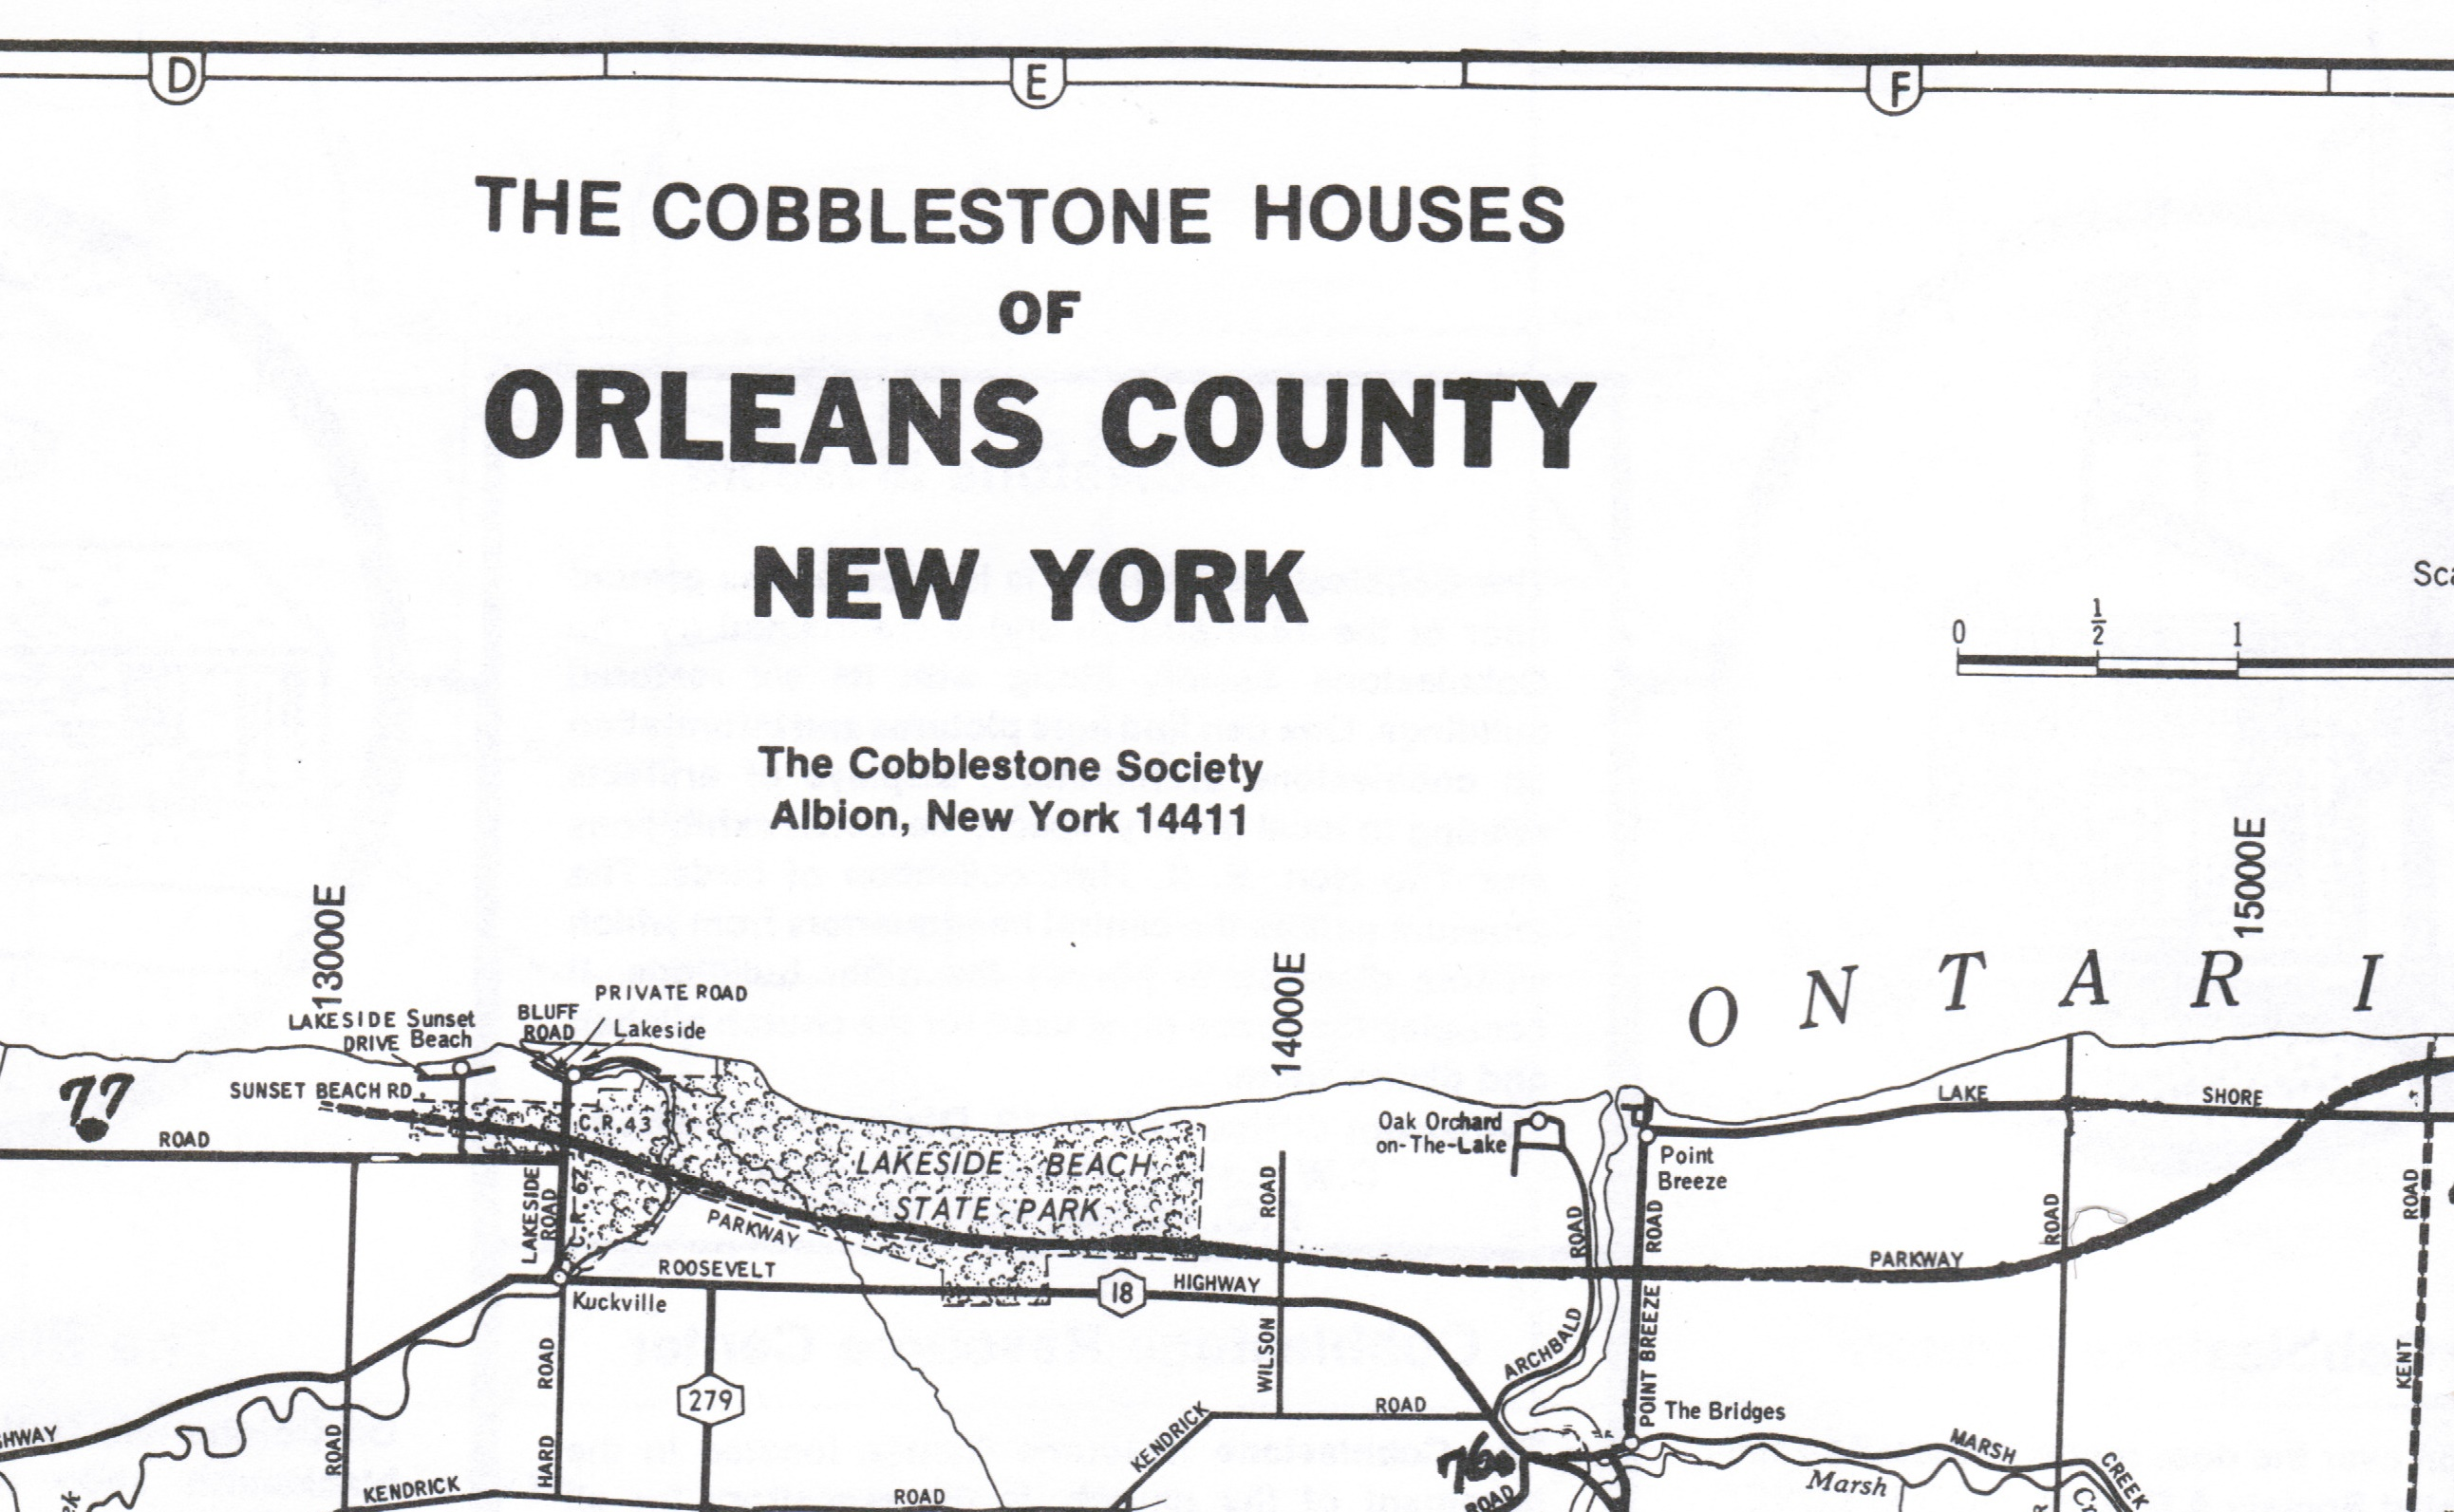 Counties In New York Map.The Cobblestone Museum The Cobblestone Houses Of Orleans County